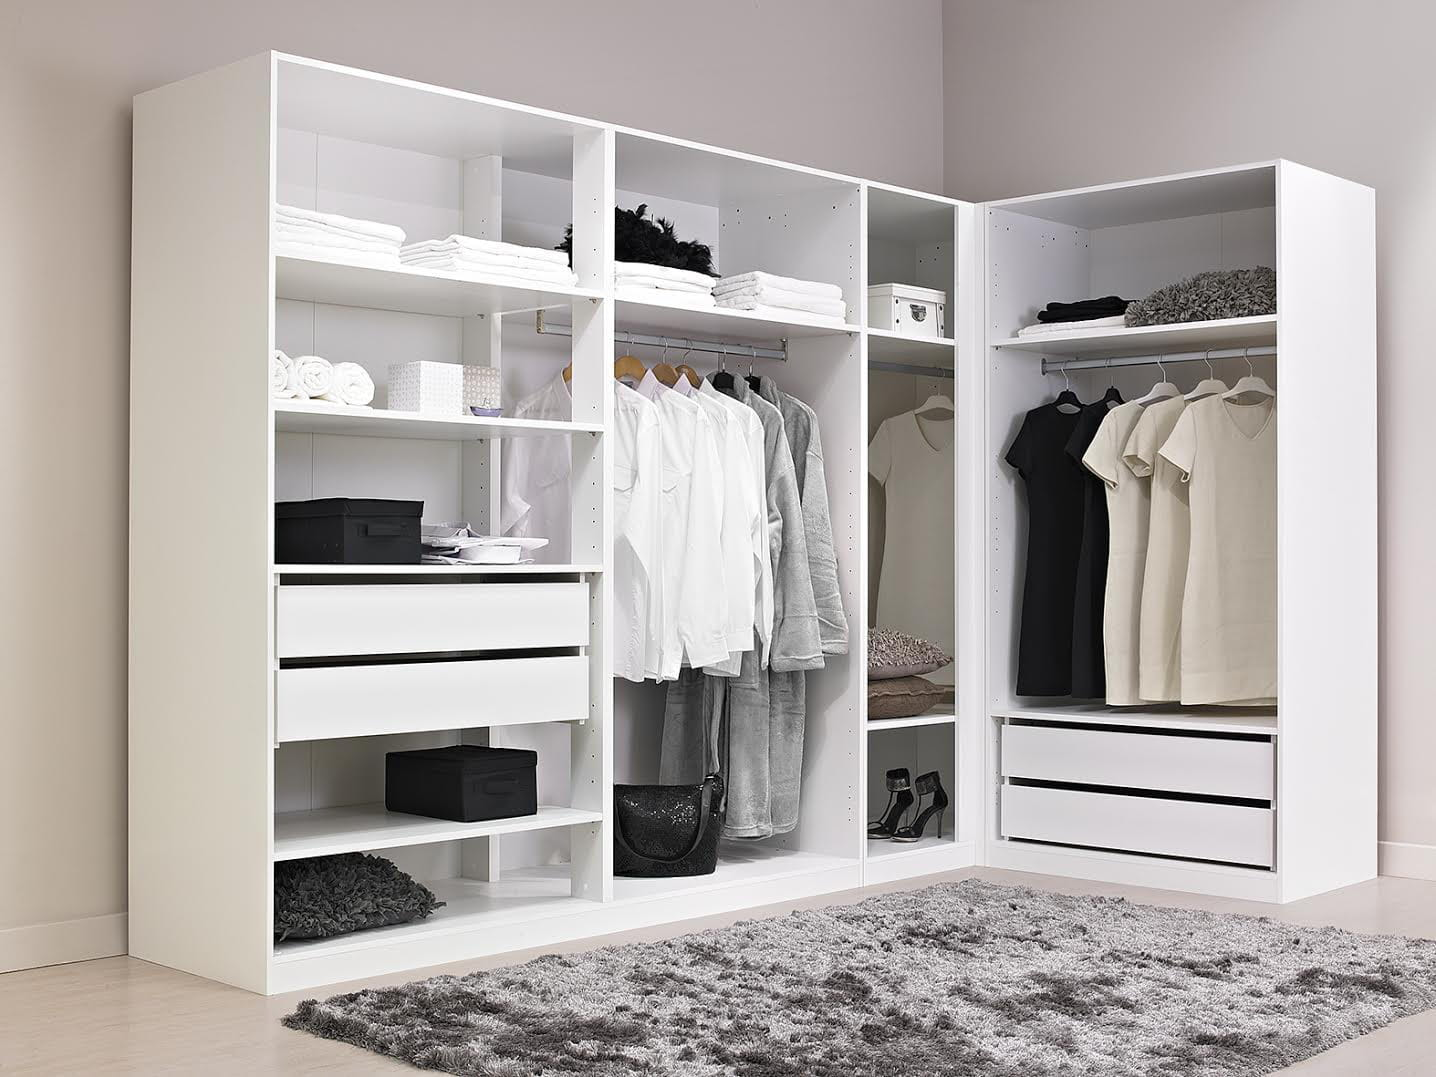 Amenagement Dressing Angle : dressing d 39 angle alin a comment am nager un dressing d ~ Premium-room.com Idées de Décoration